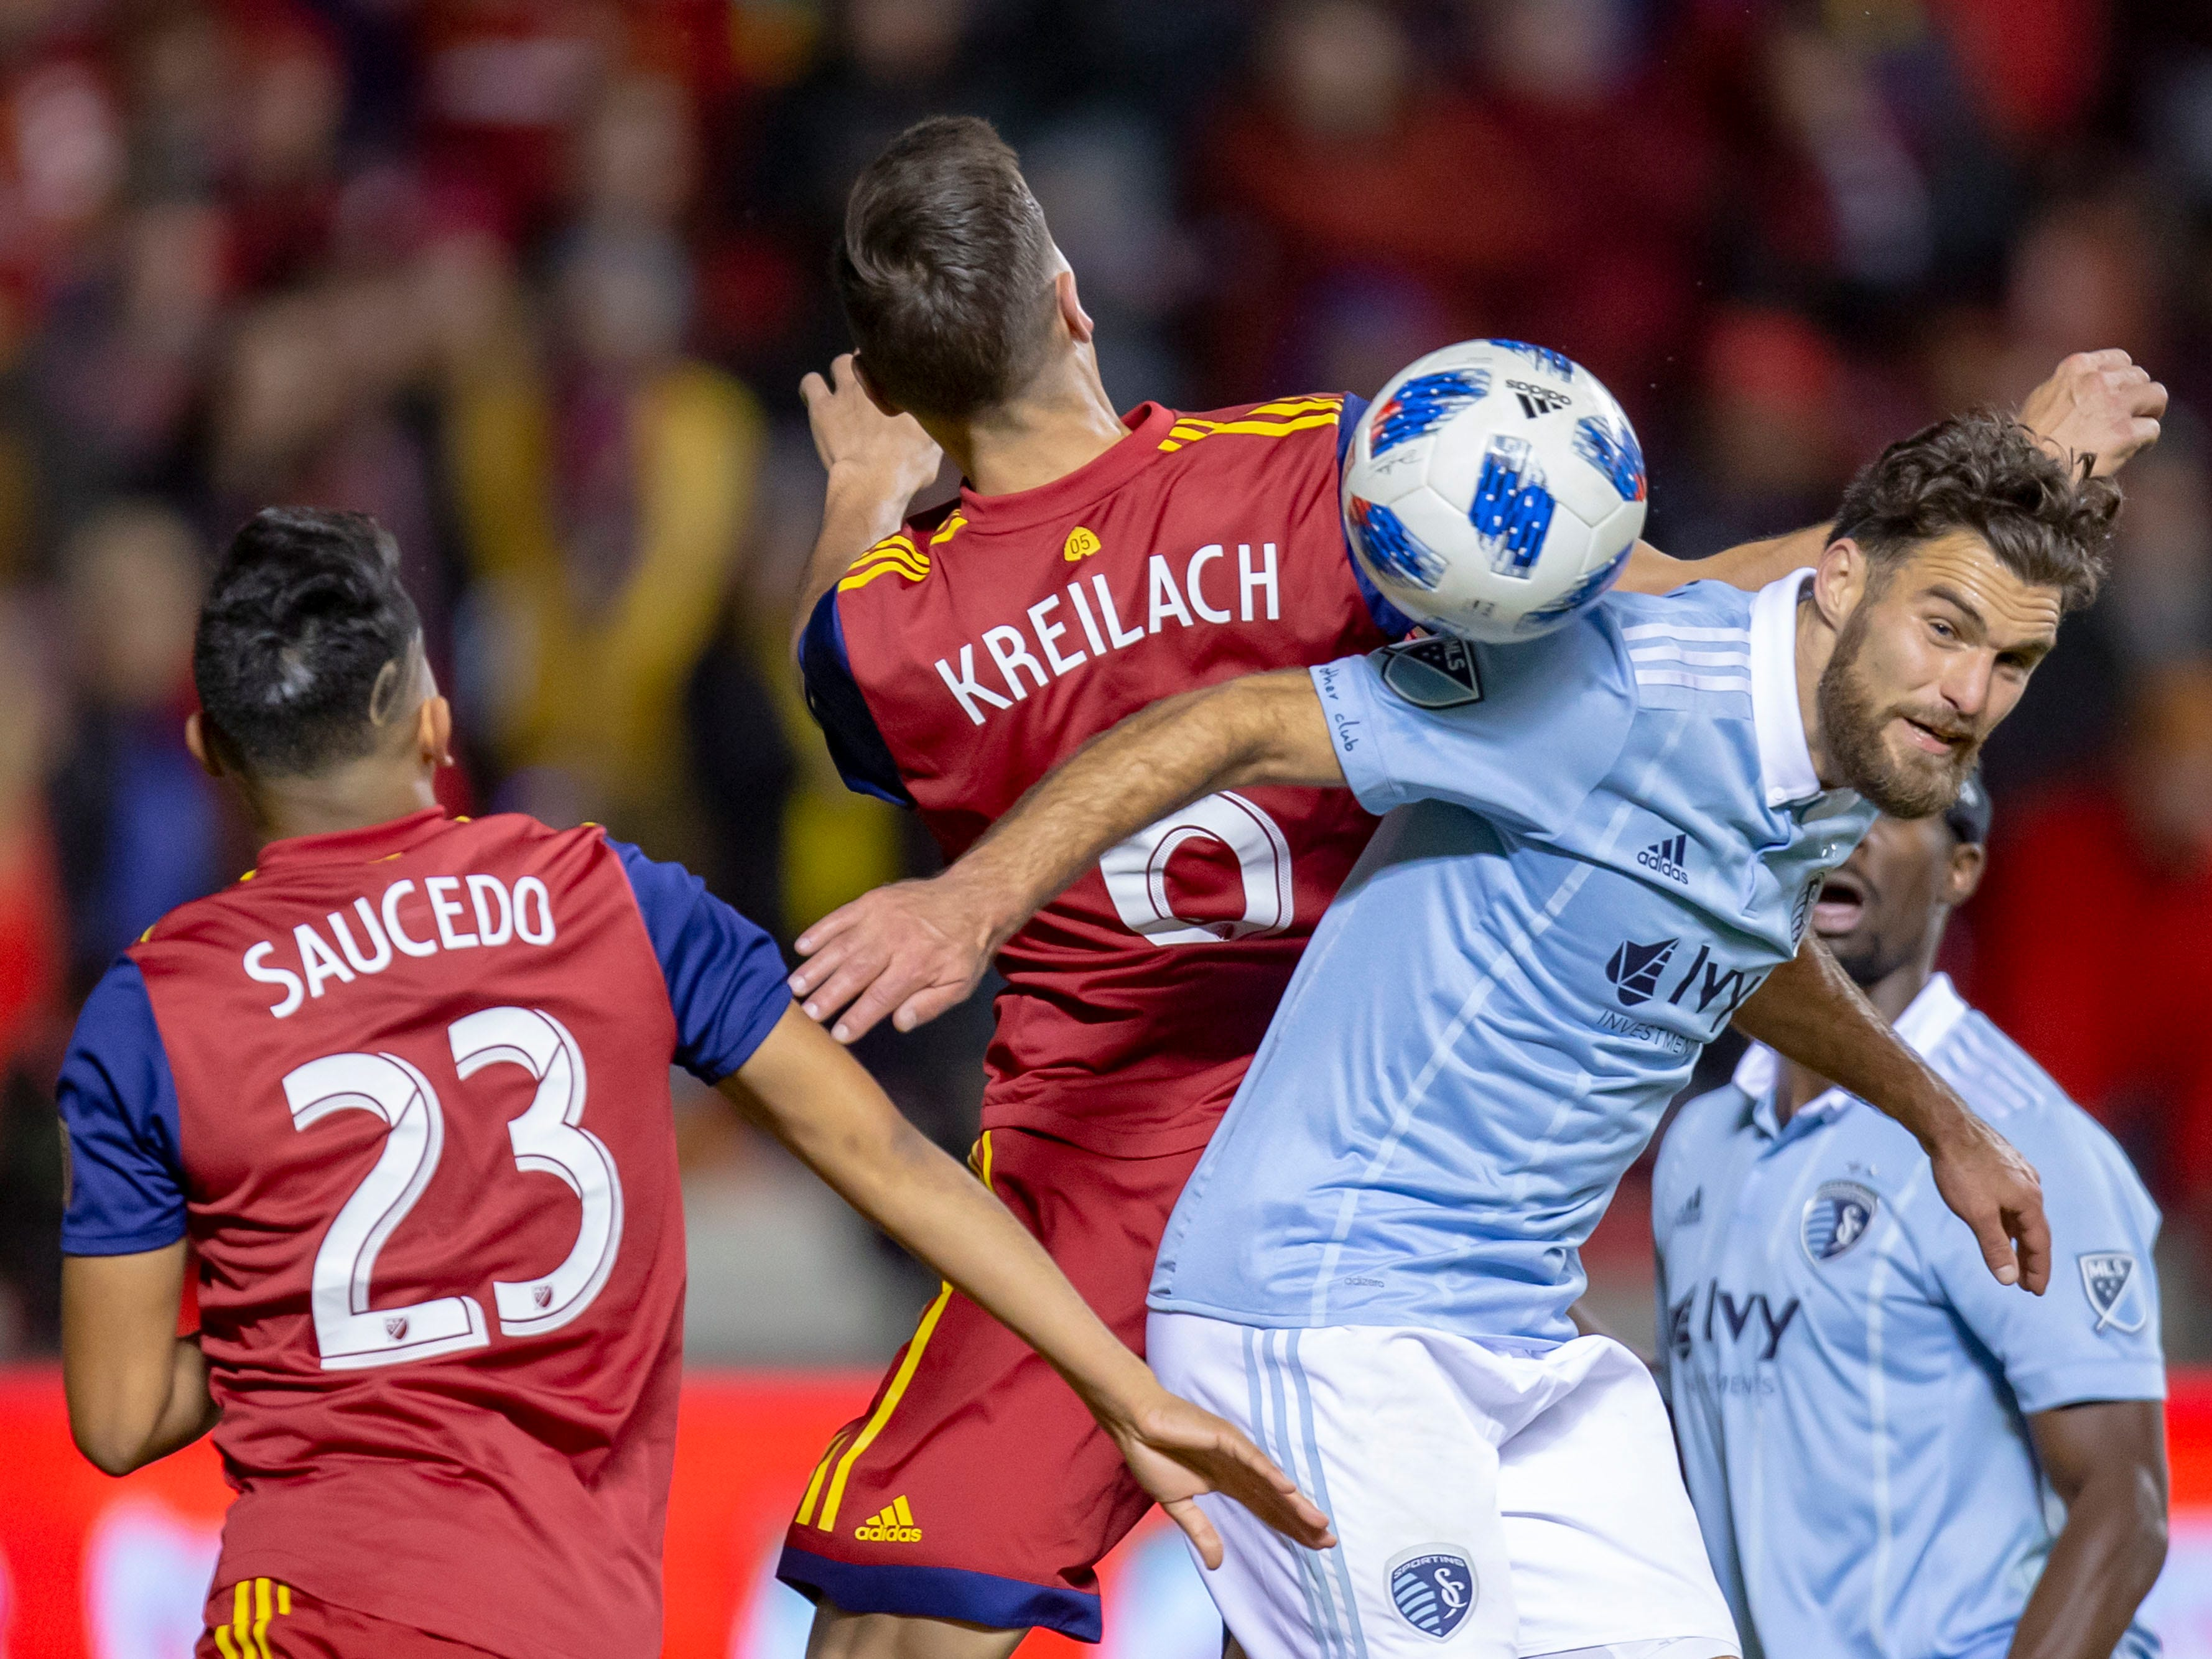 Real Salt Lake midfielder Damir Kreilach (6) and Sporting Kansas City midfielder Graham Zusi (8) play for a ball during the second half at Rio Tinto Stadium.